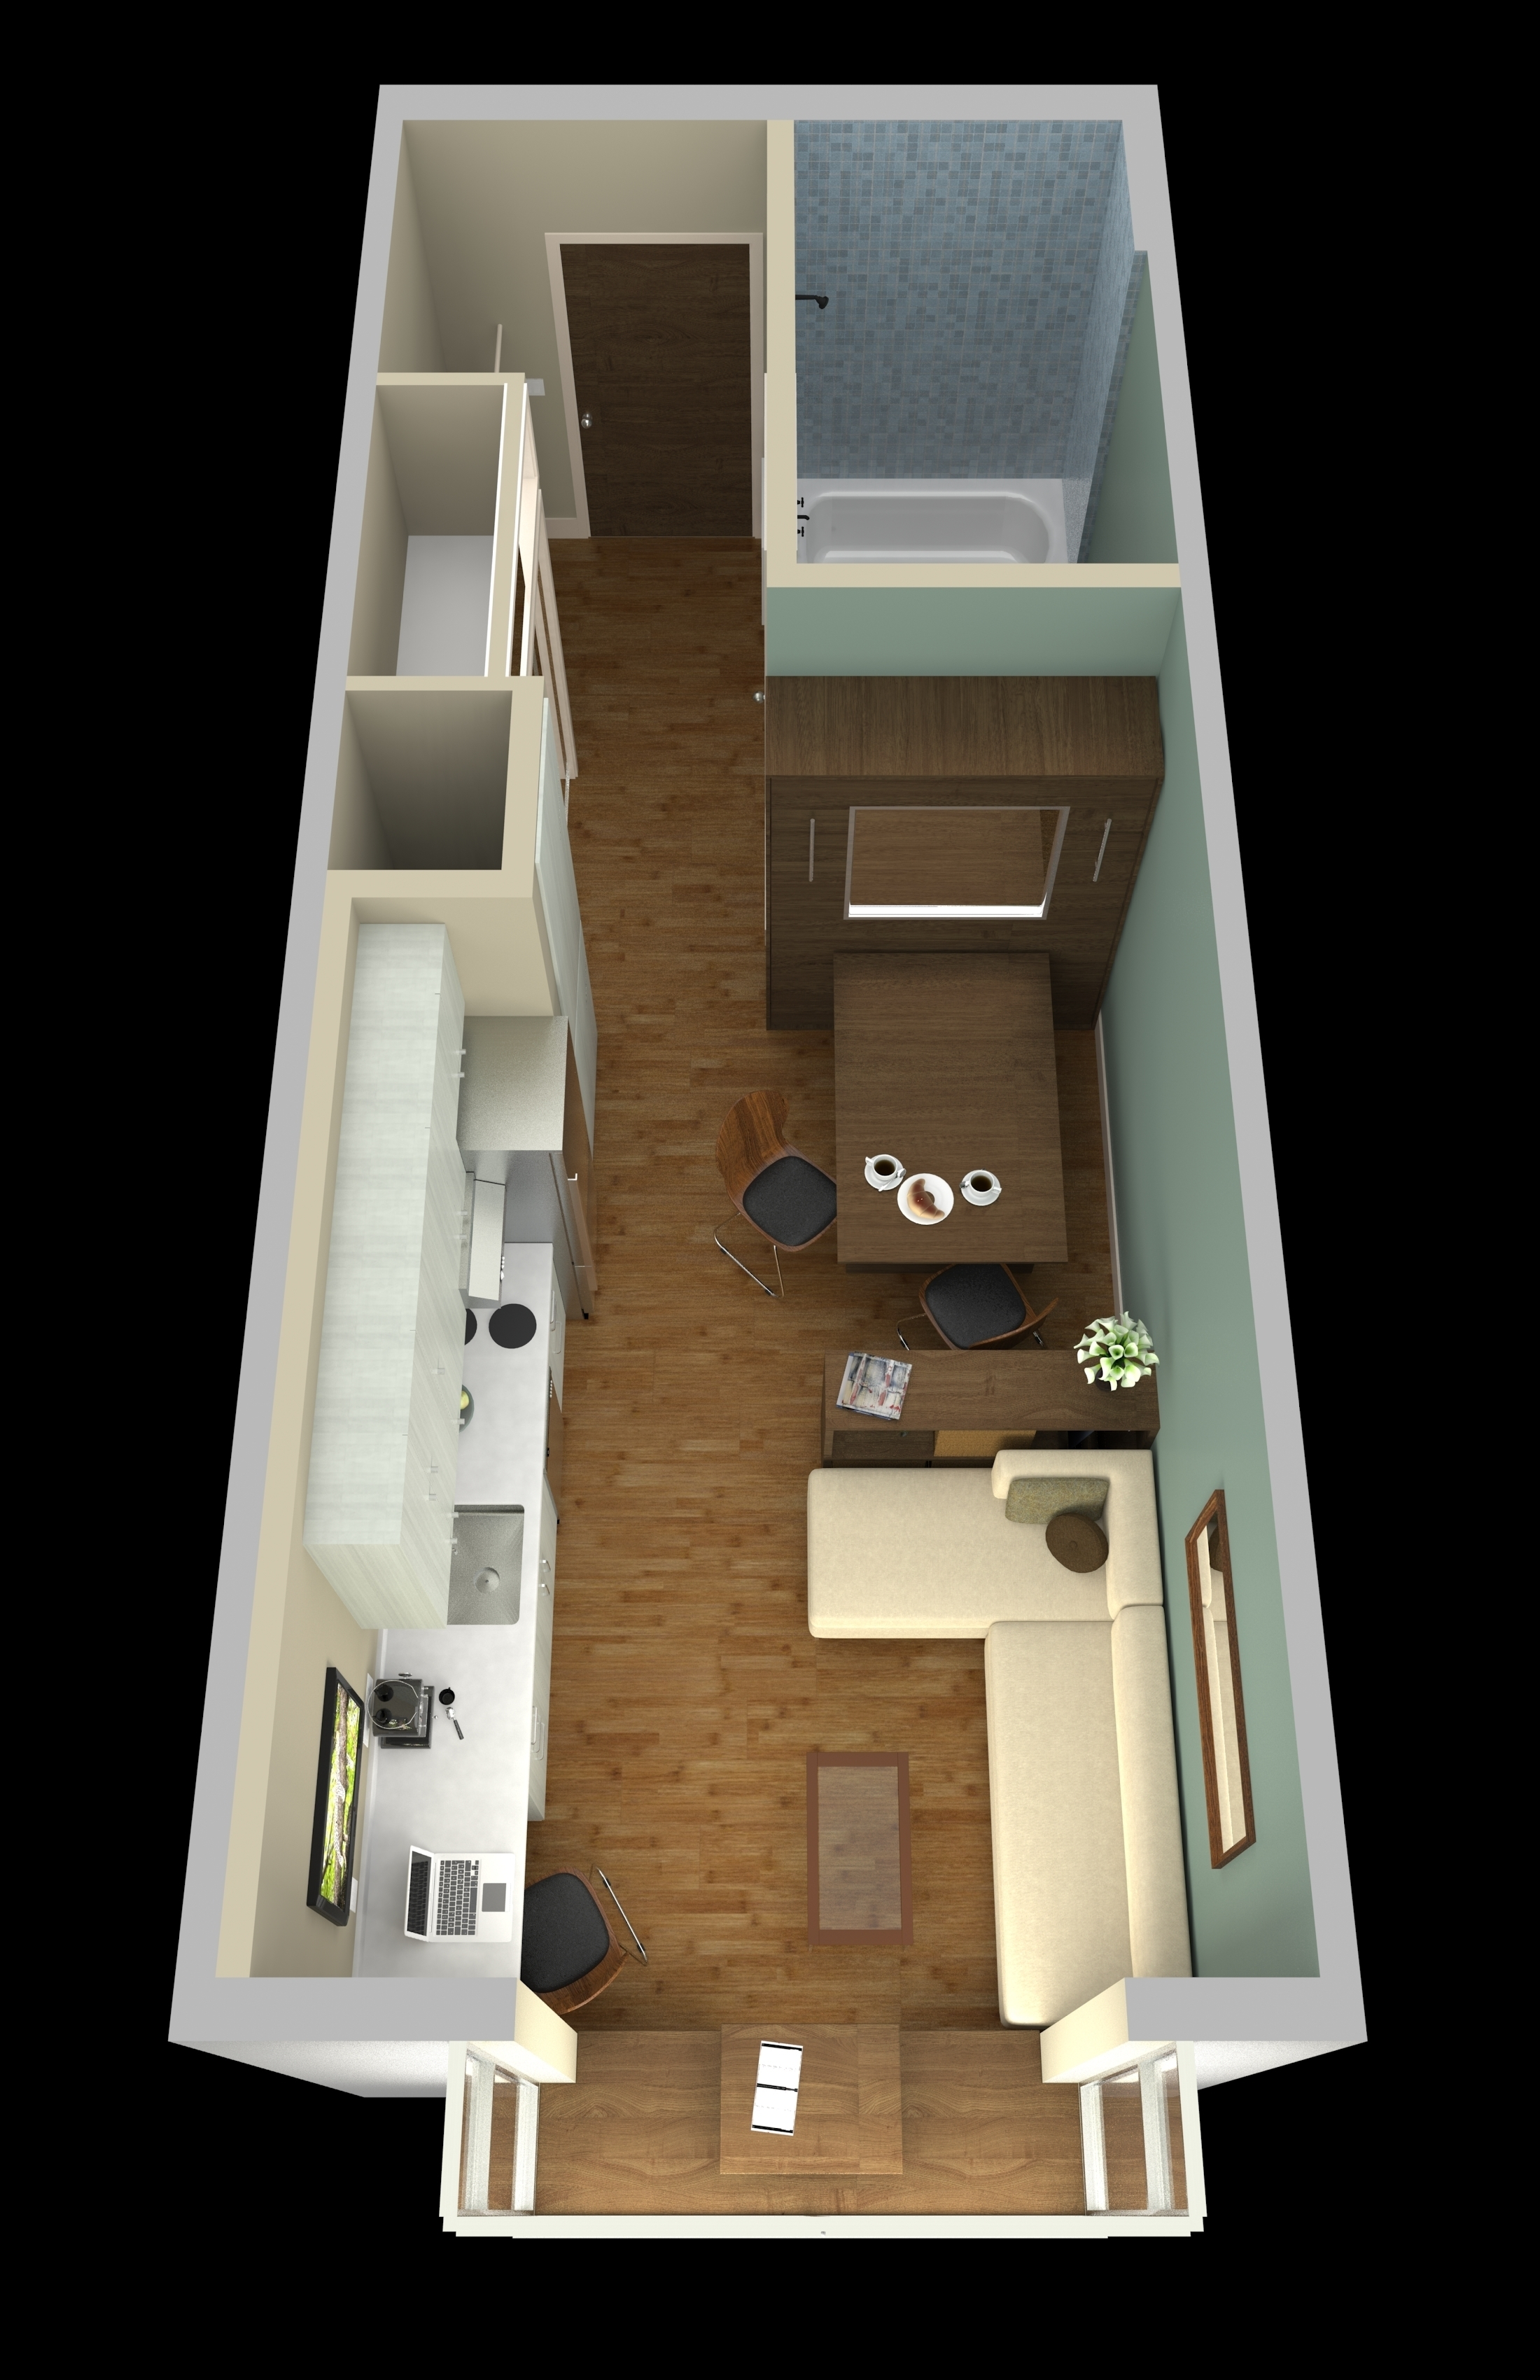 Spaces must serve double duty in micro-units -- like the dining table above that converts into a Murphy bed.